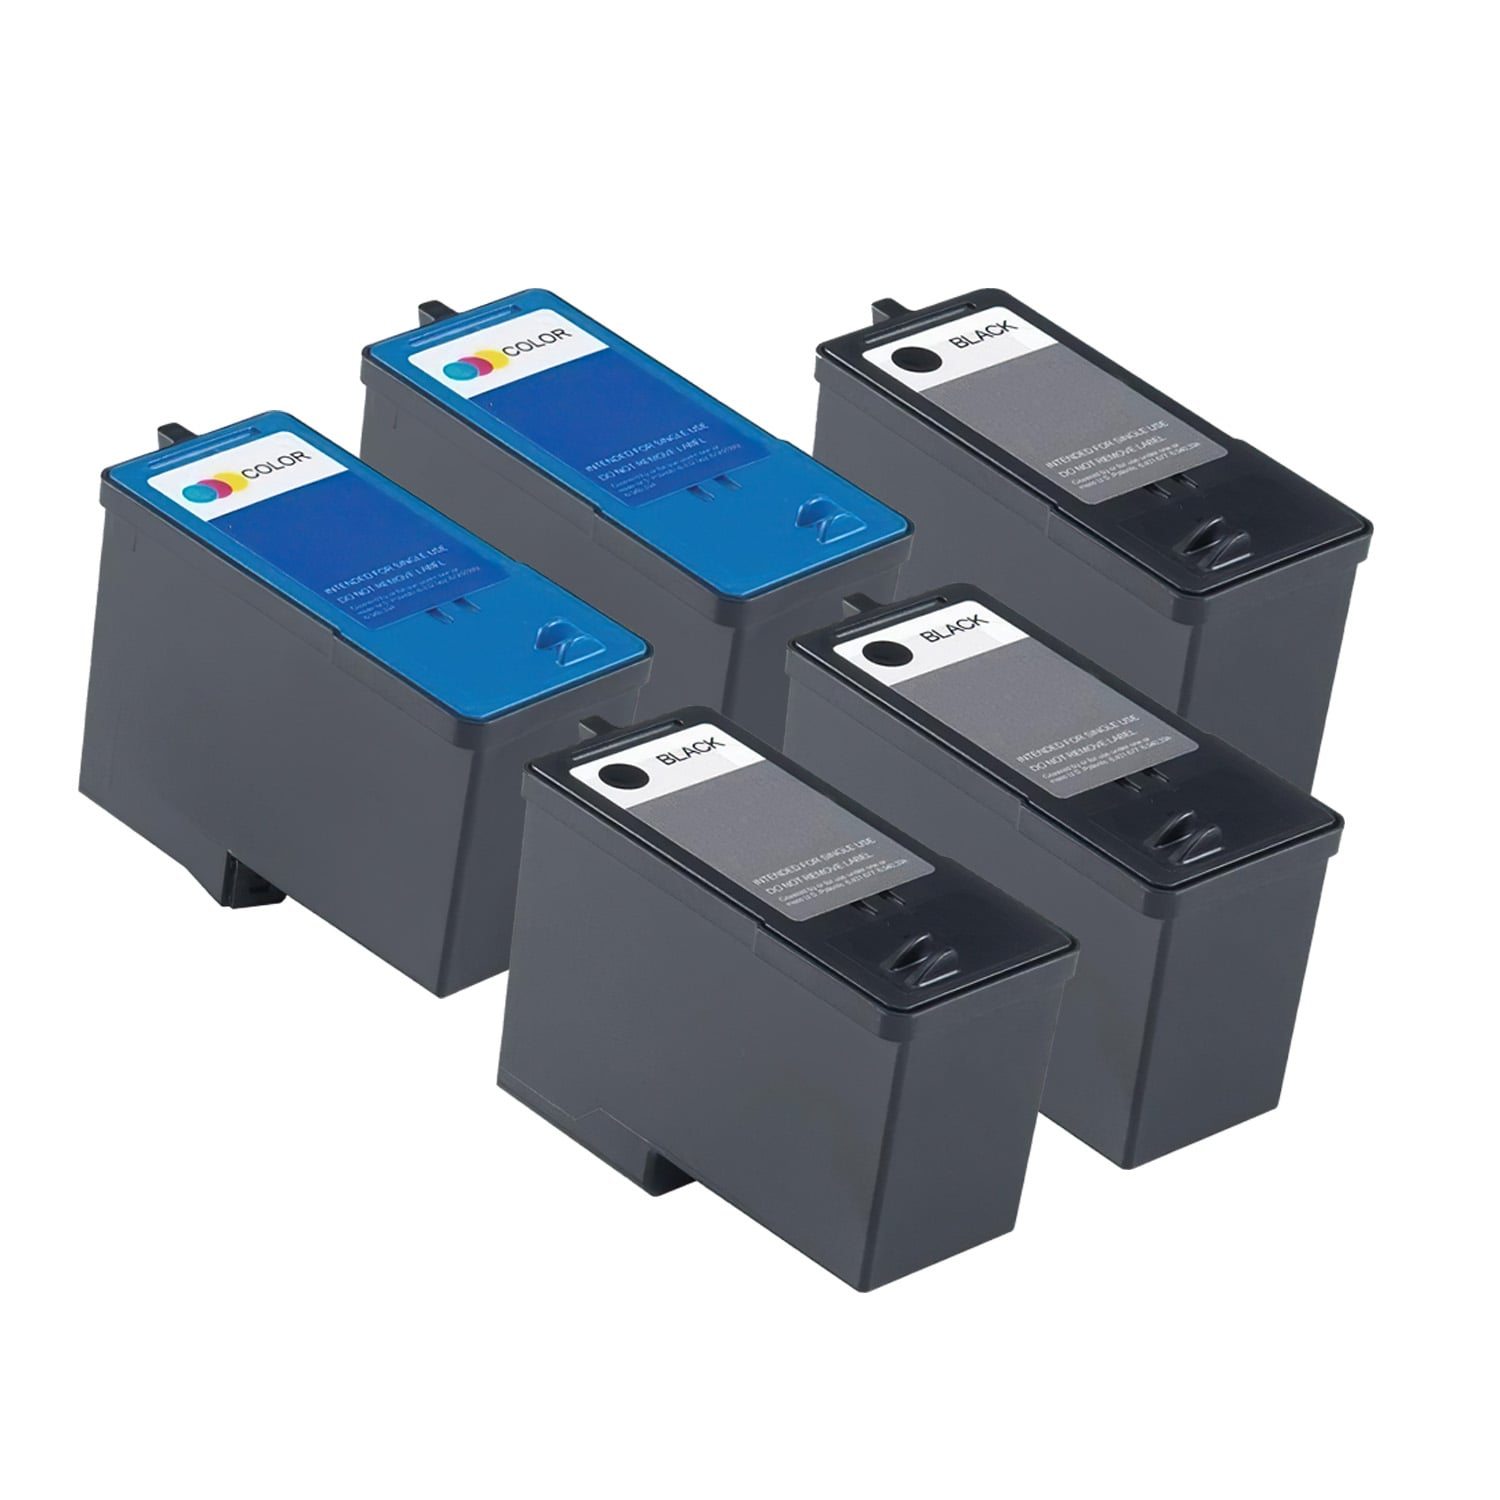 Remanufactured Dell Series 9 Inkjet High Capacity Pack - 5 Cartridges